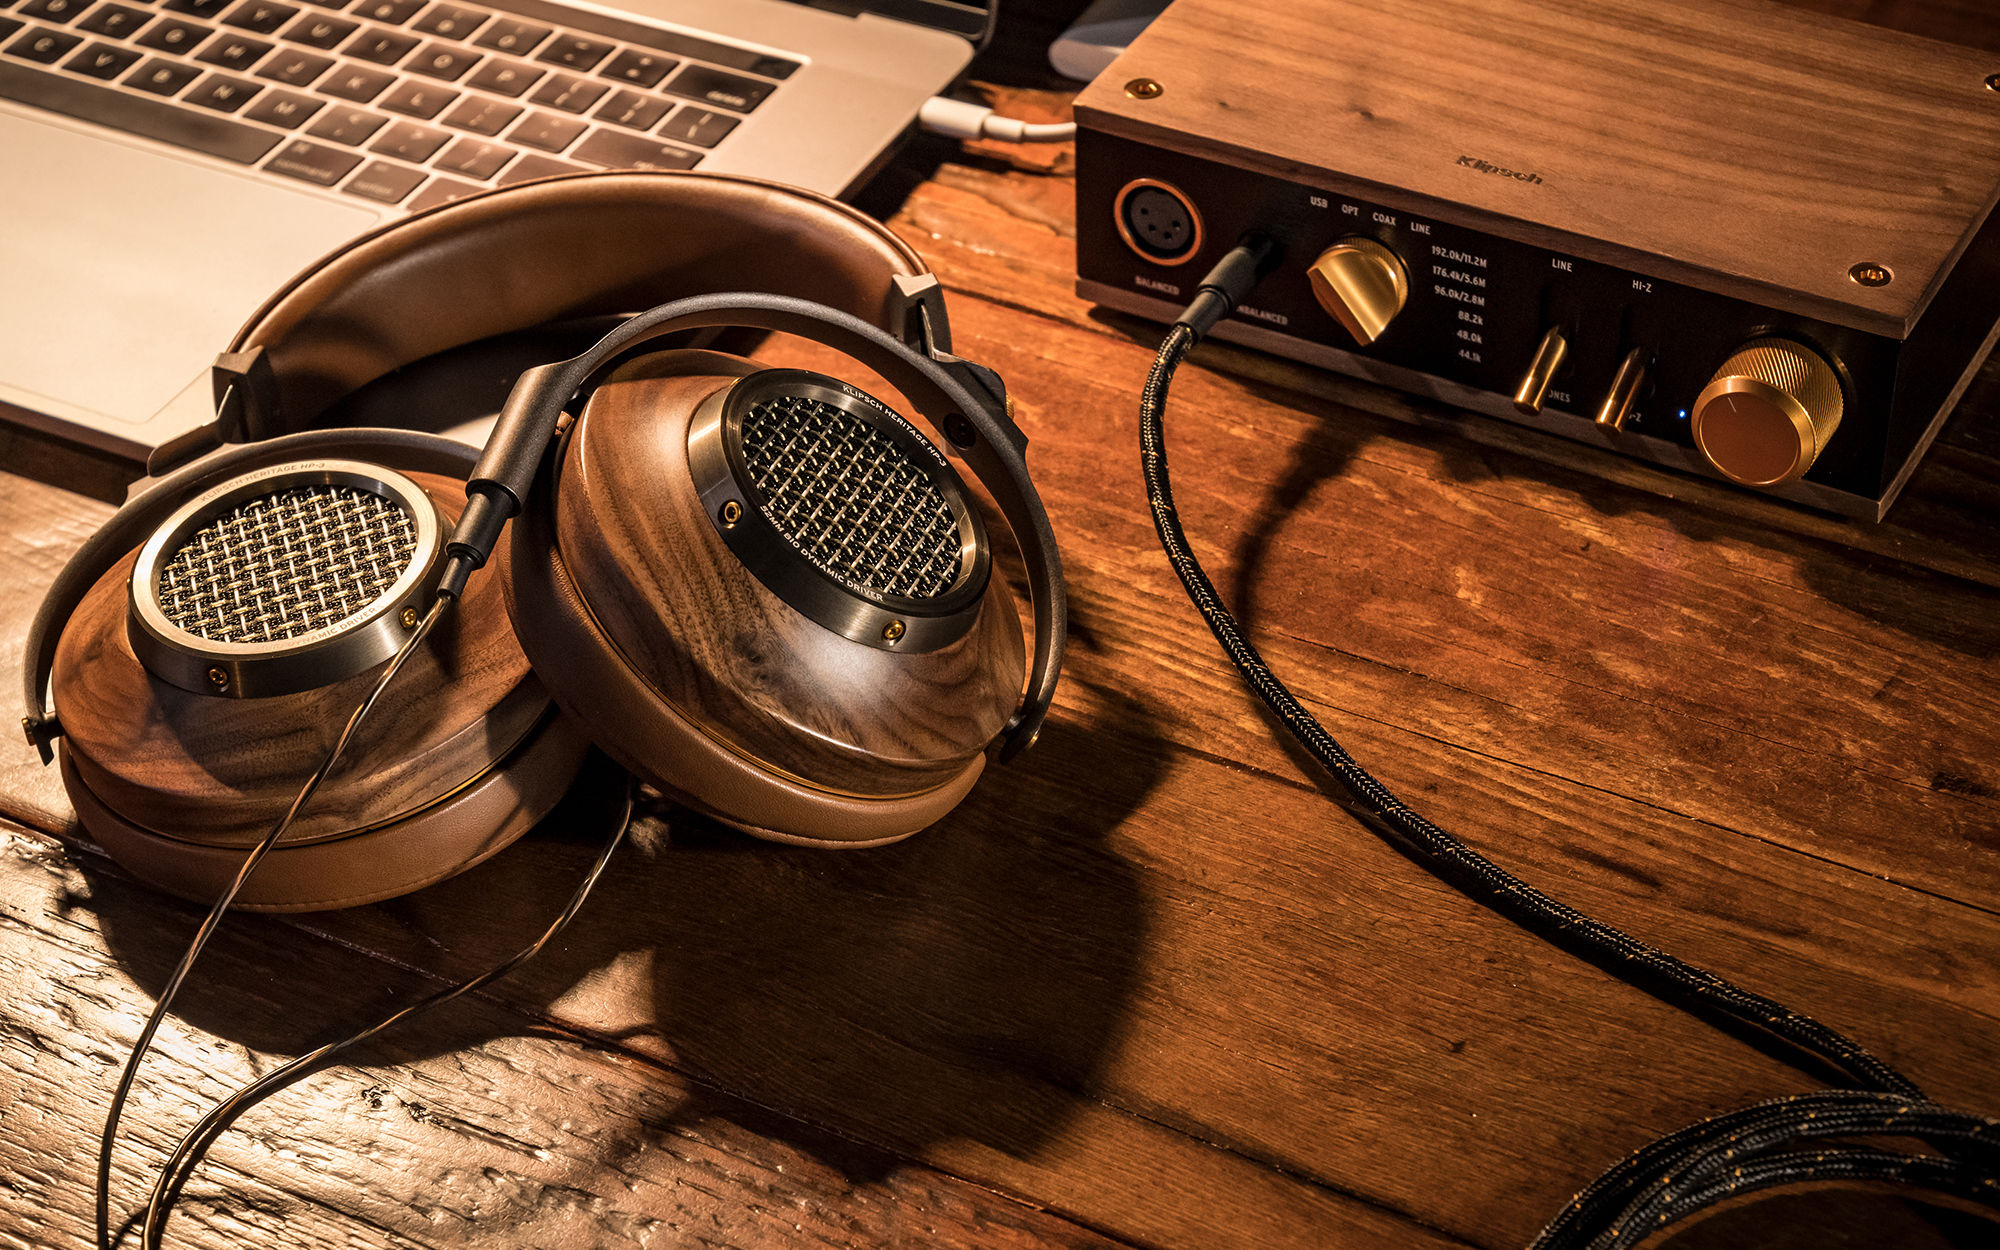 Heritage HP-3 Headphones with Heritage Headphone Amplifier and laptop